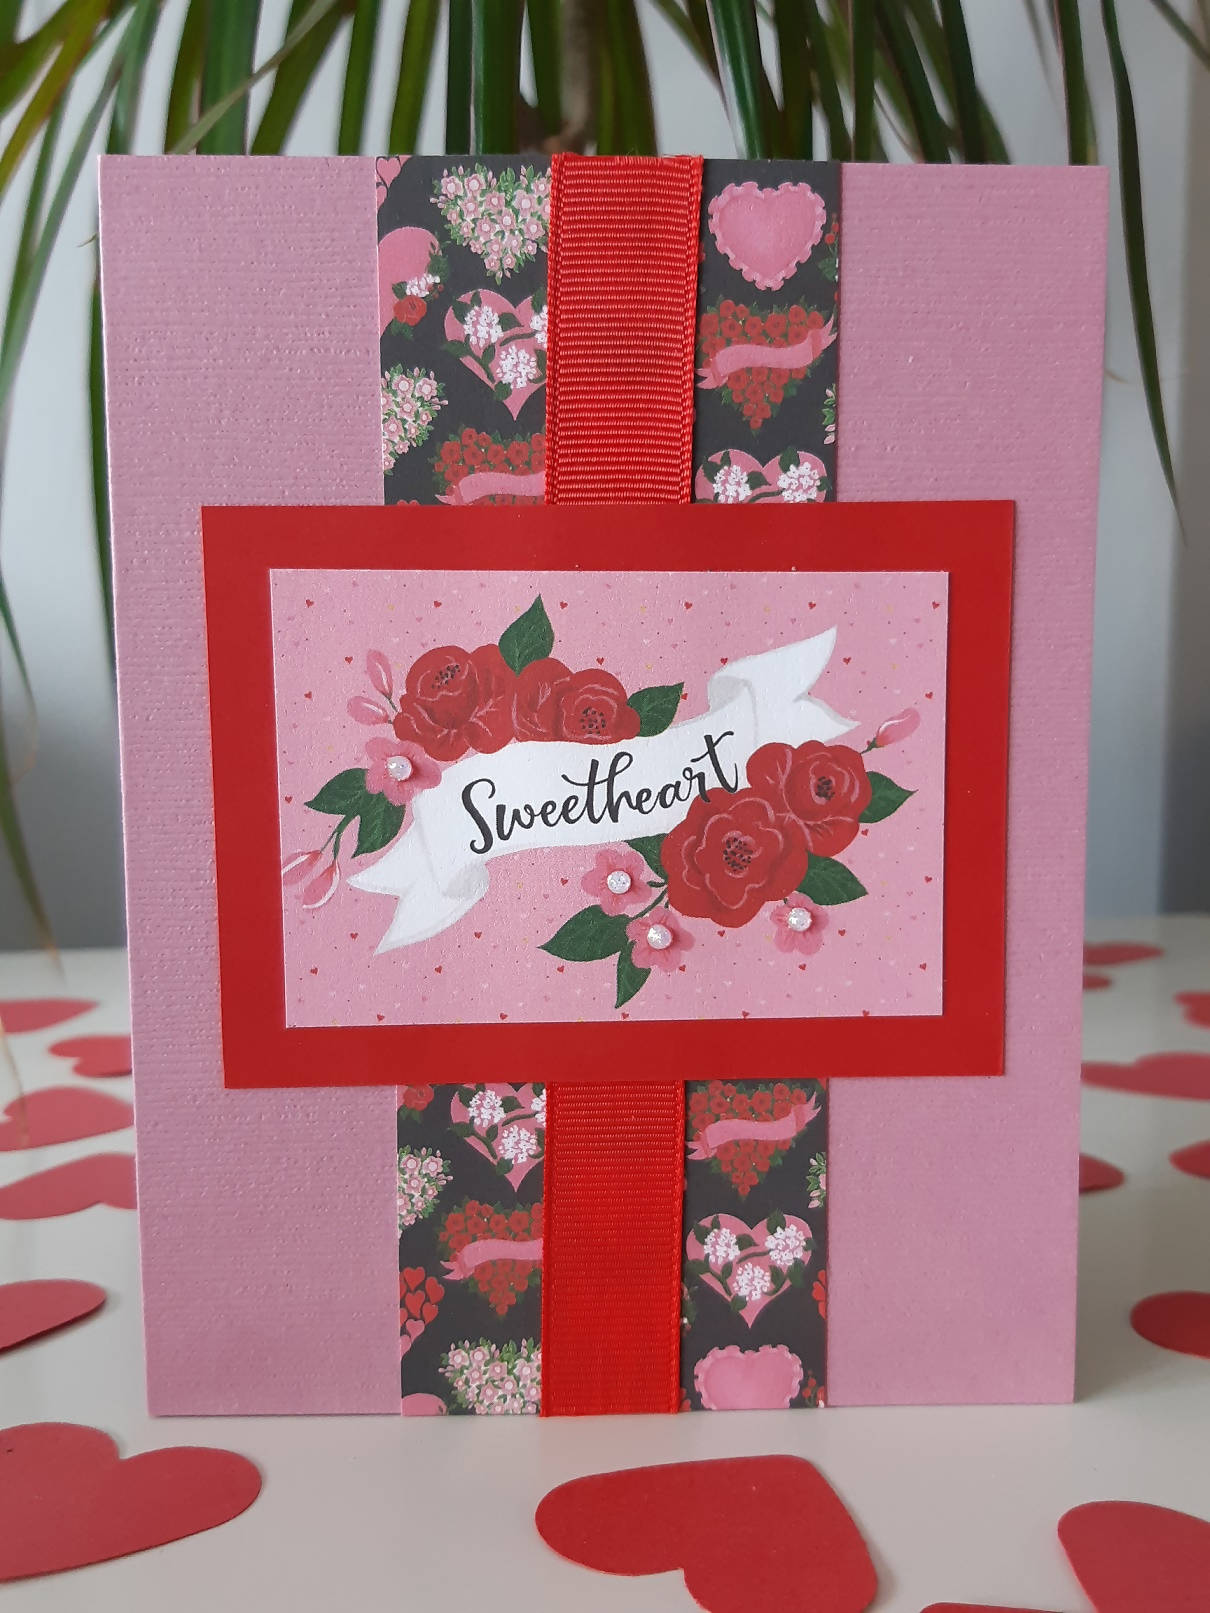 Sweetheart - Greeting card